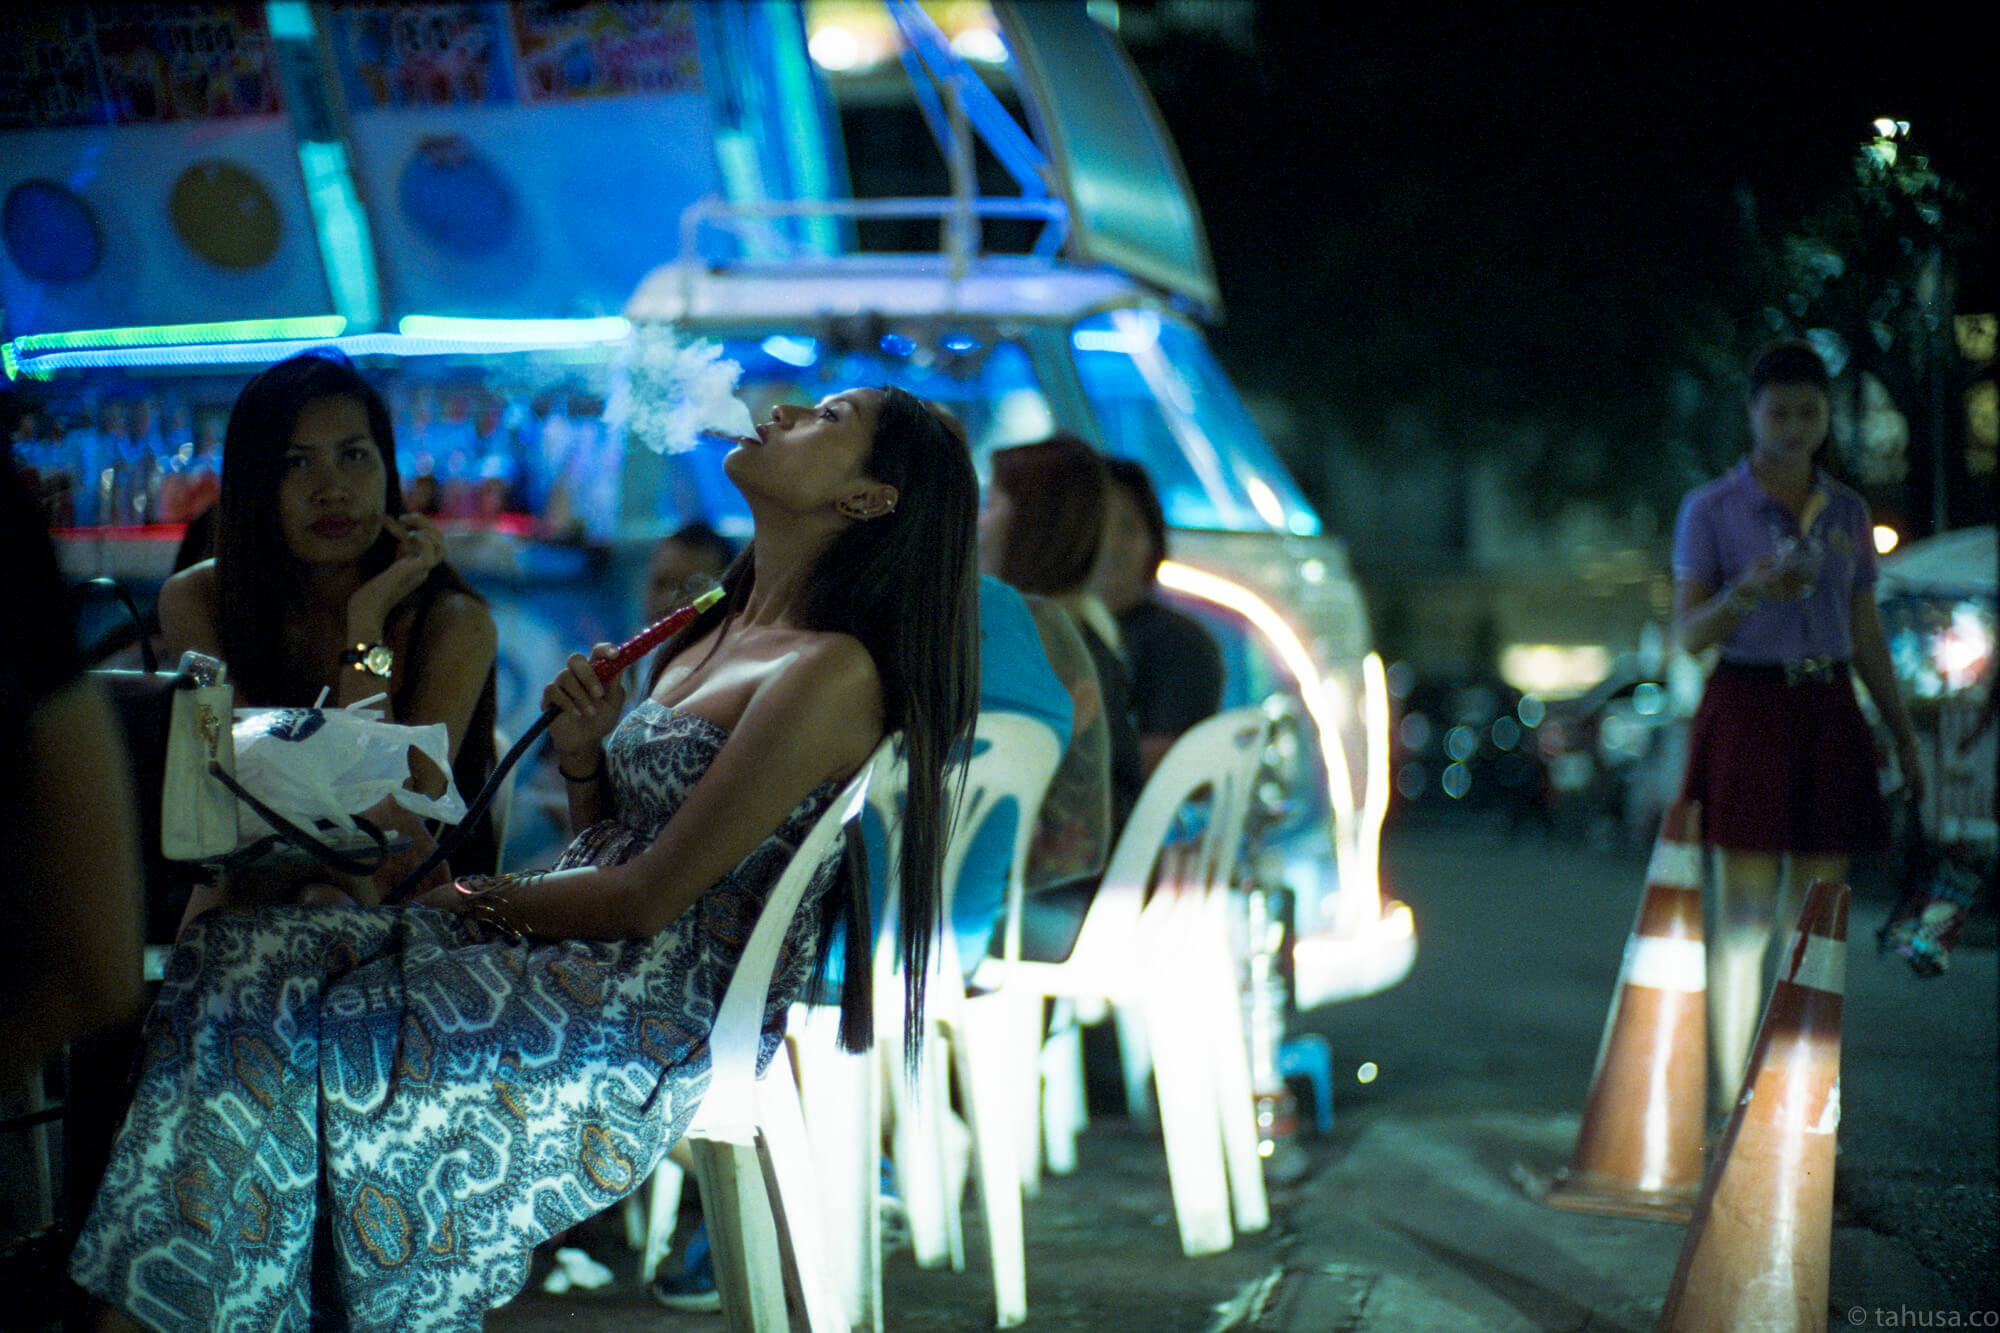 shisha-puff-pattaya-thailand-HK-Cinestill-800T-800-iso800-Tungsten-film-movie-kodak-with-Noctilux-50mm-f1-f1.0-e58-v1-large-aperture-bokeh-grain-pushed-street-snap